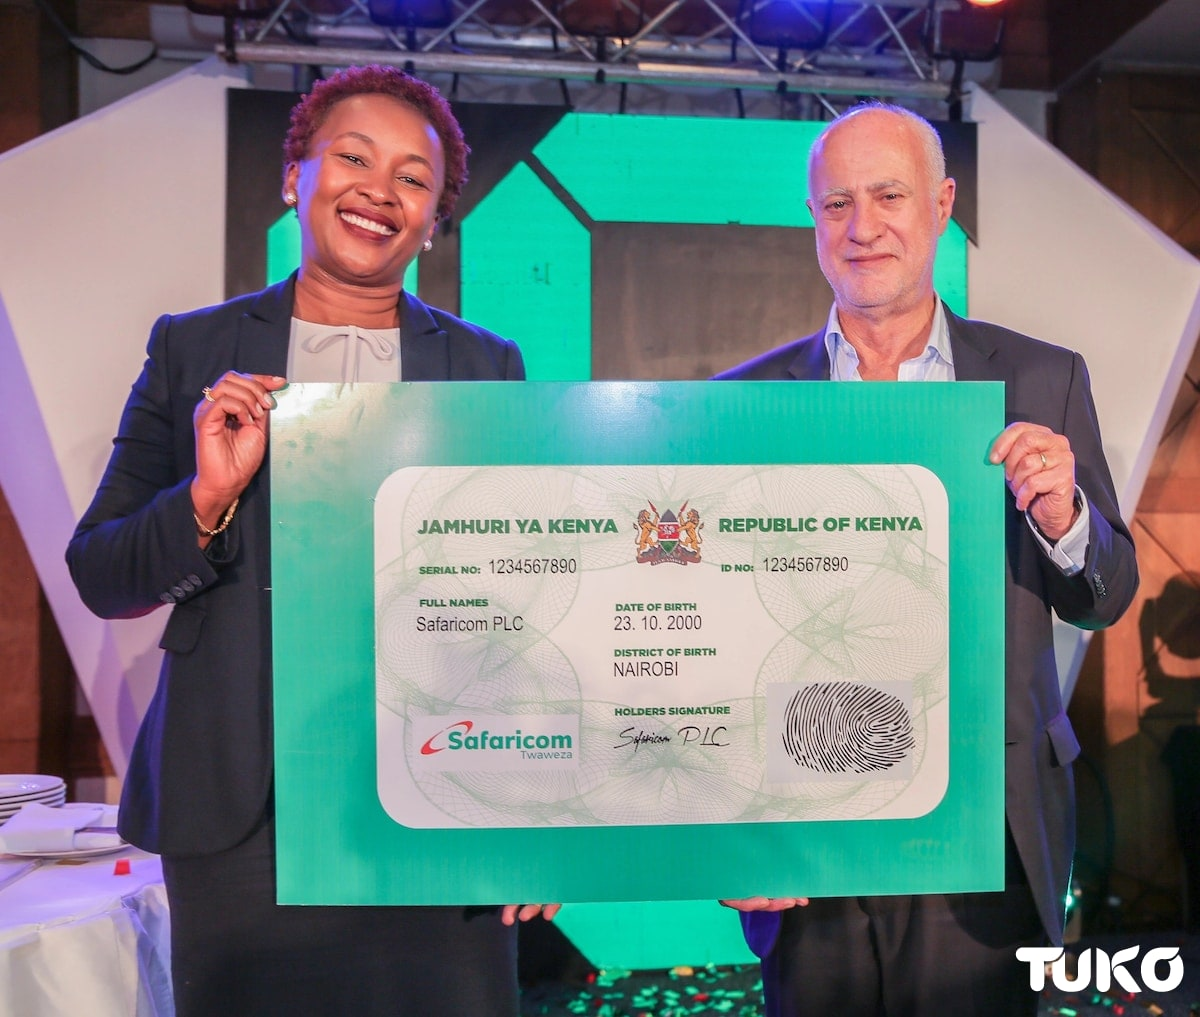 Kenya's biggest telecommunication firm Safaricom marks 18 years since inception in the country